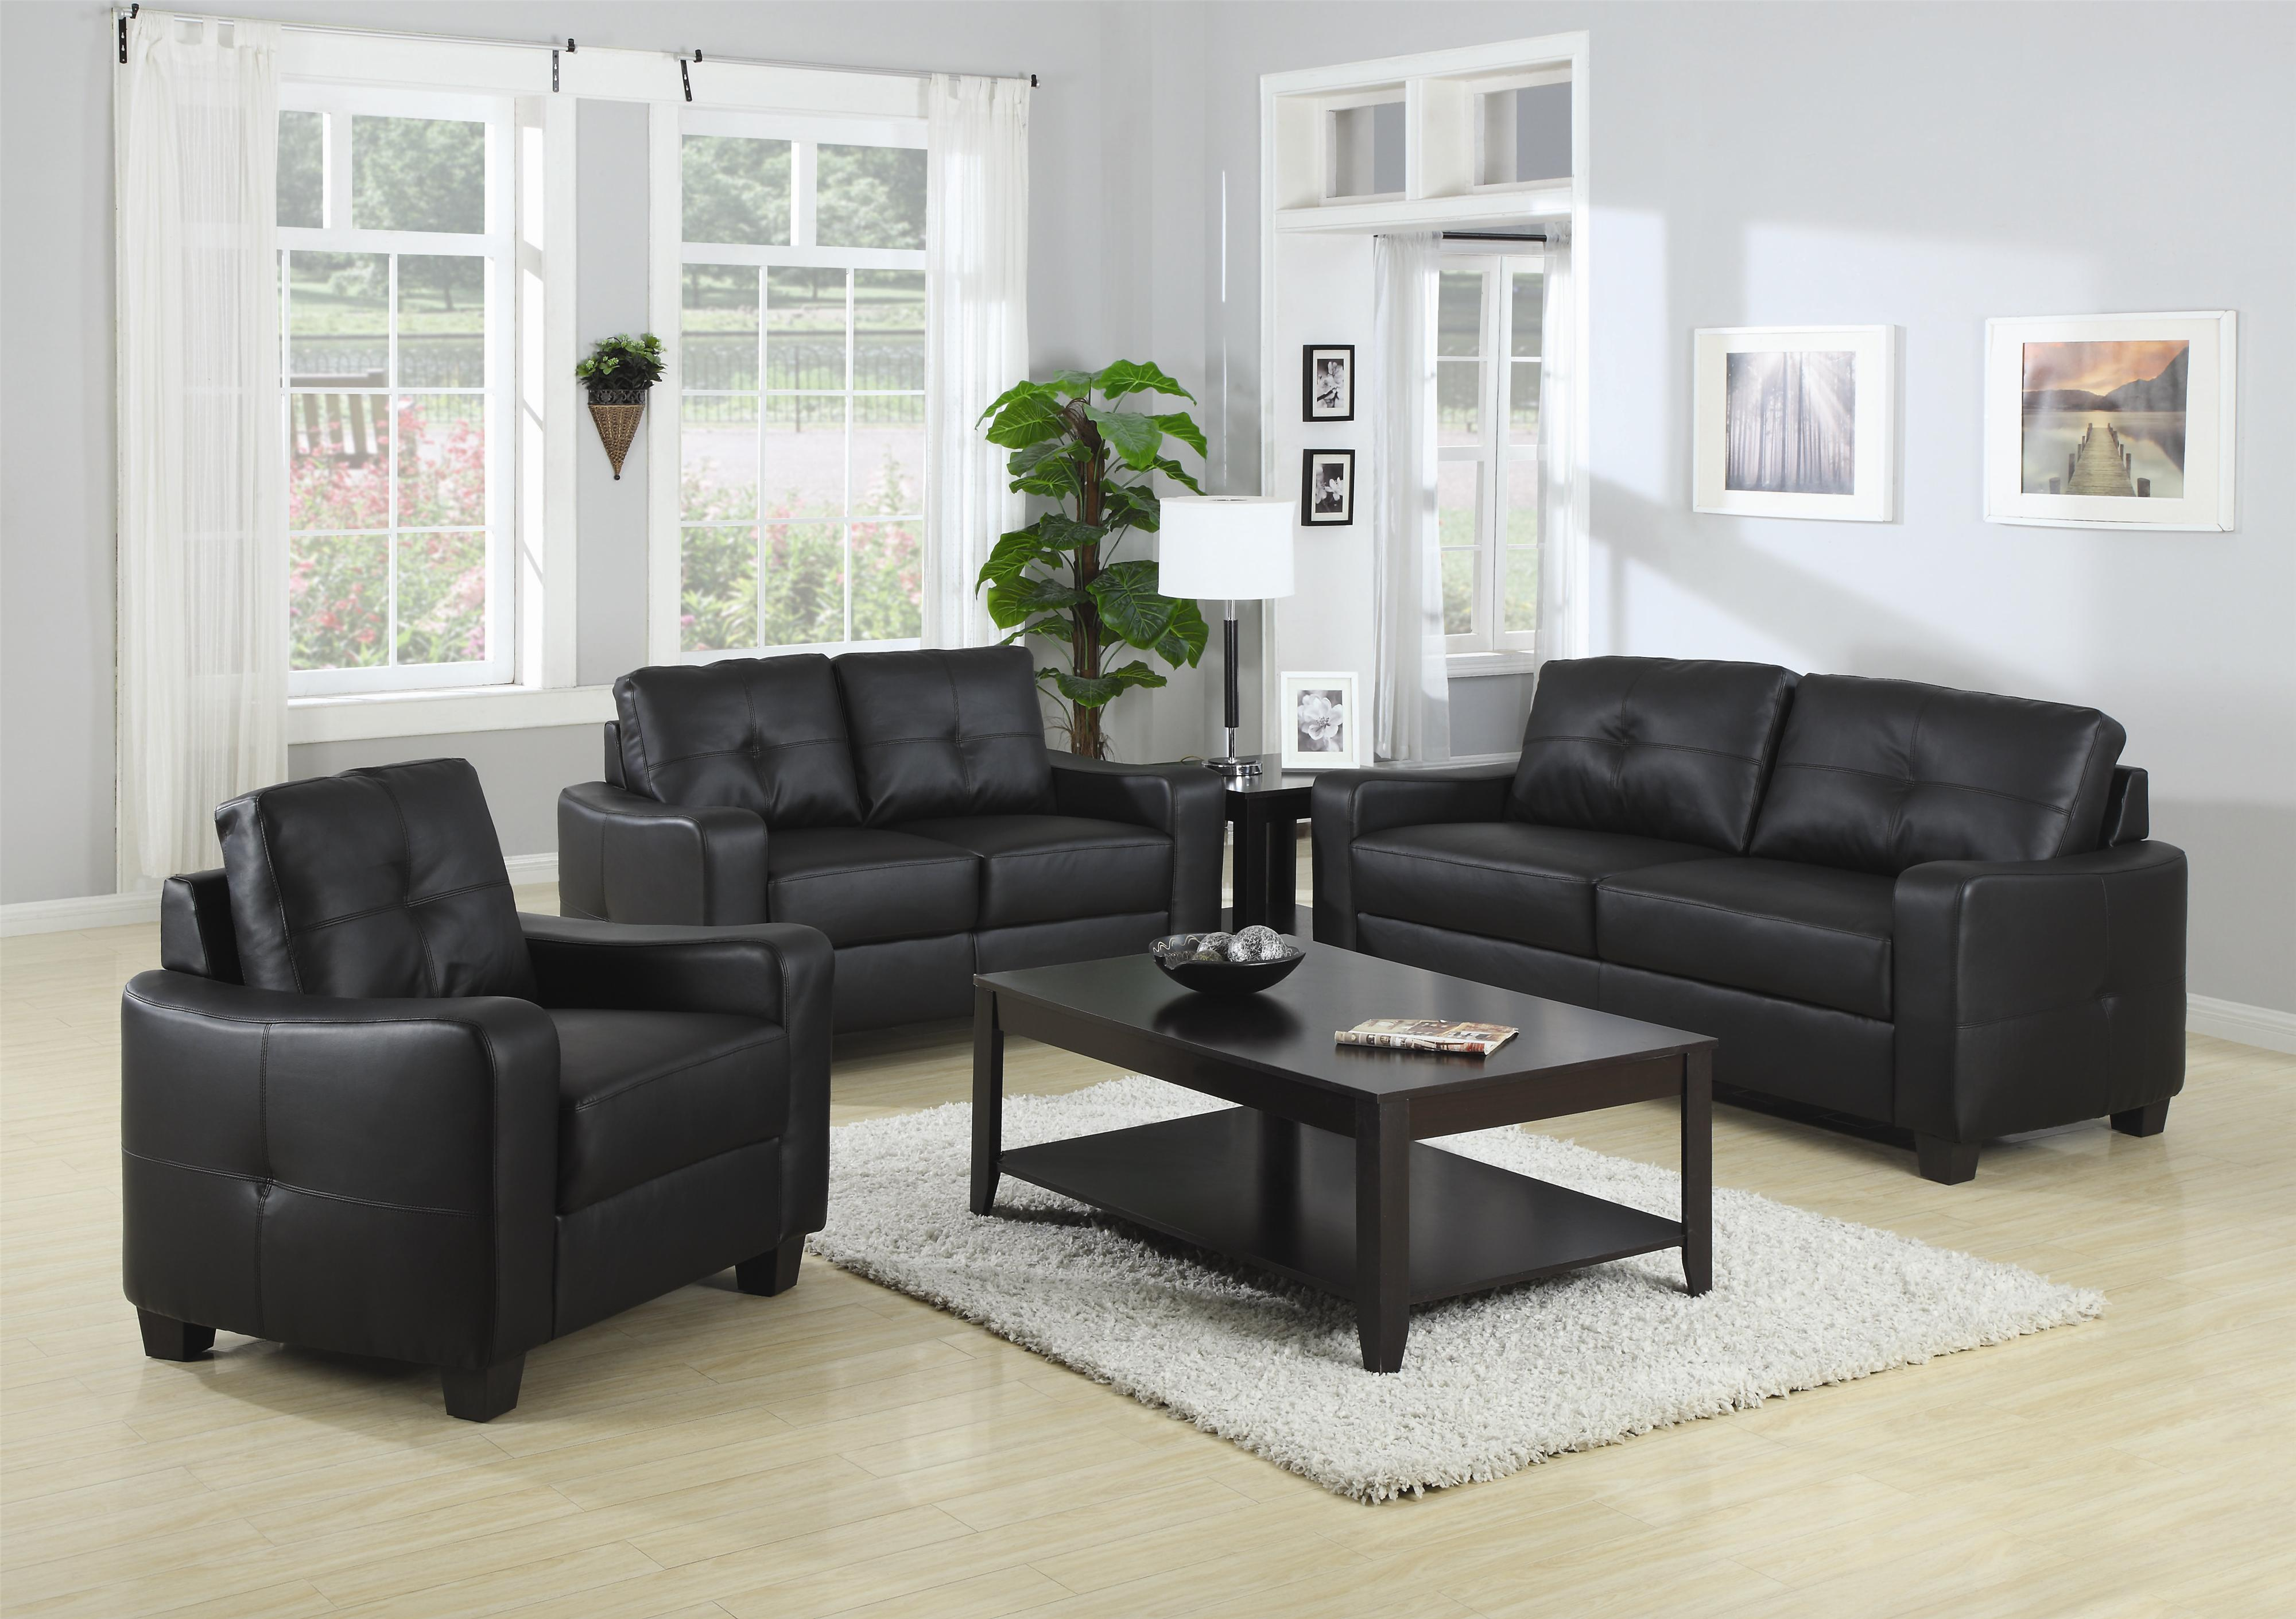 on set chaise sofa and loveseat amusing com leather black combo centerfieldbar